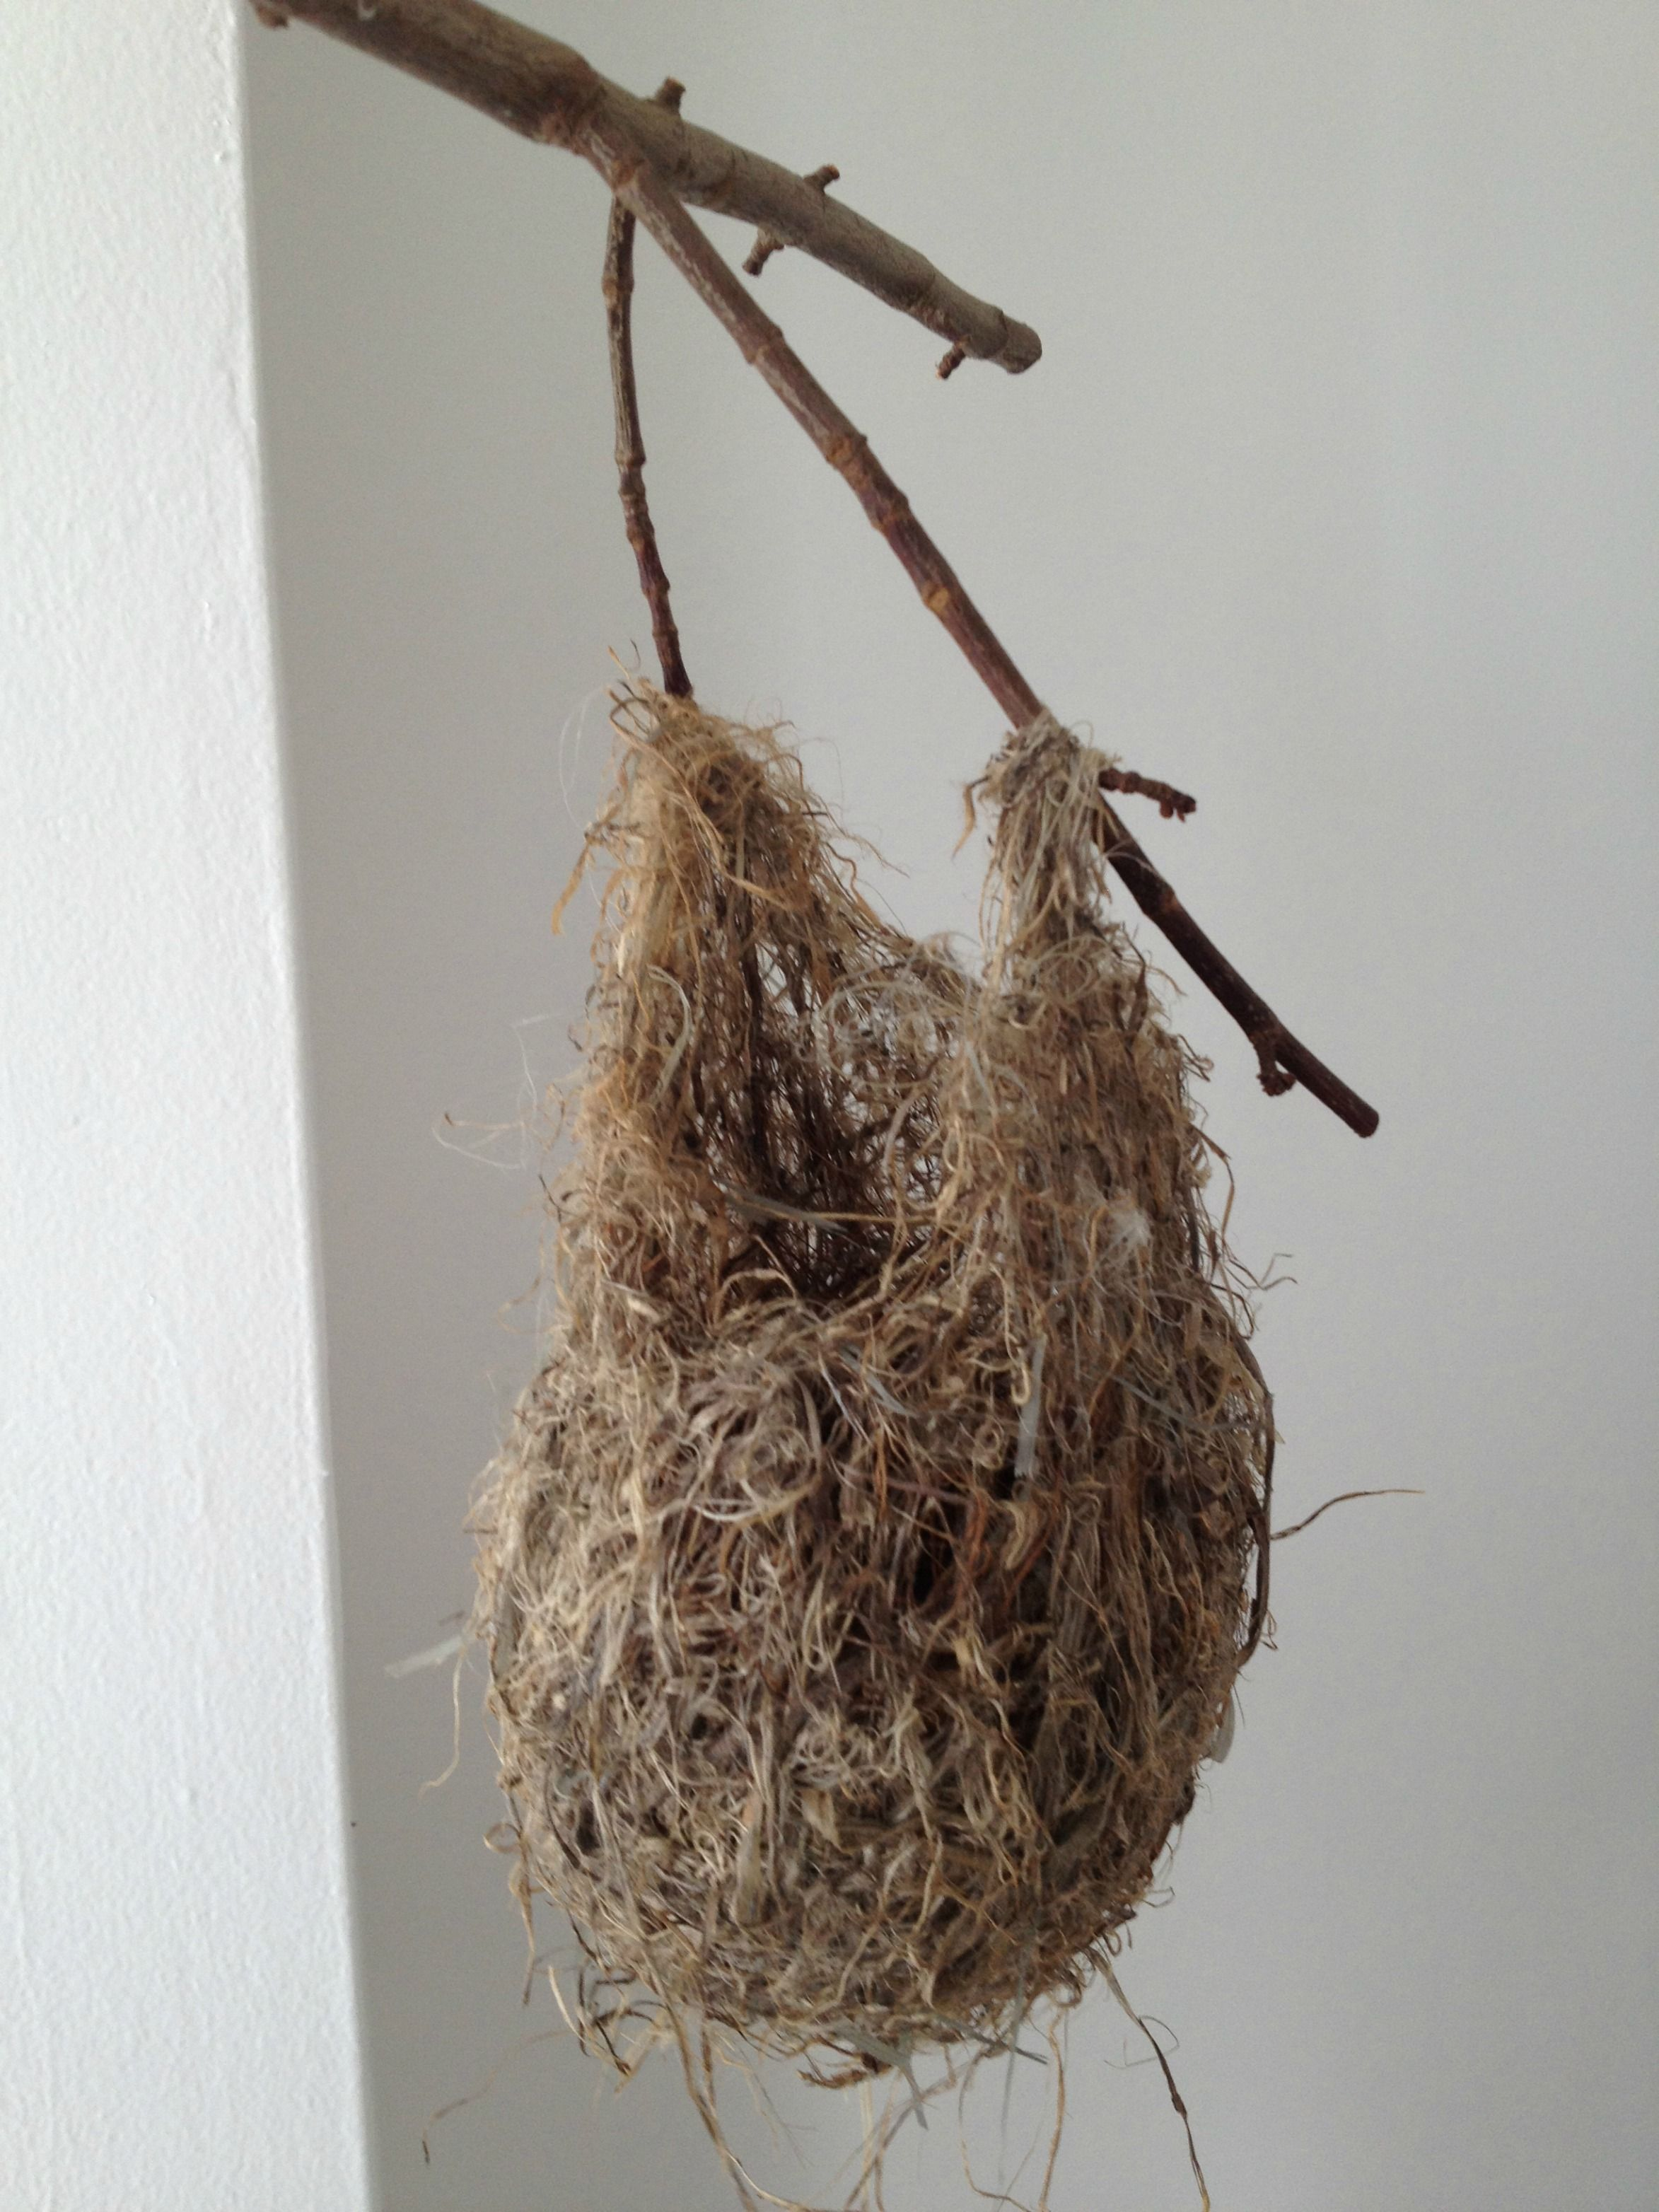 Nest For A Baltimore Oriole From Michigan In The 80 S Bird Feathers Nest Birds